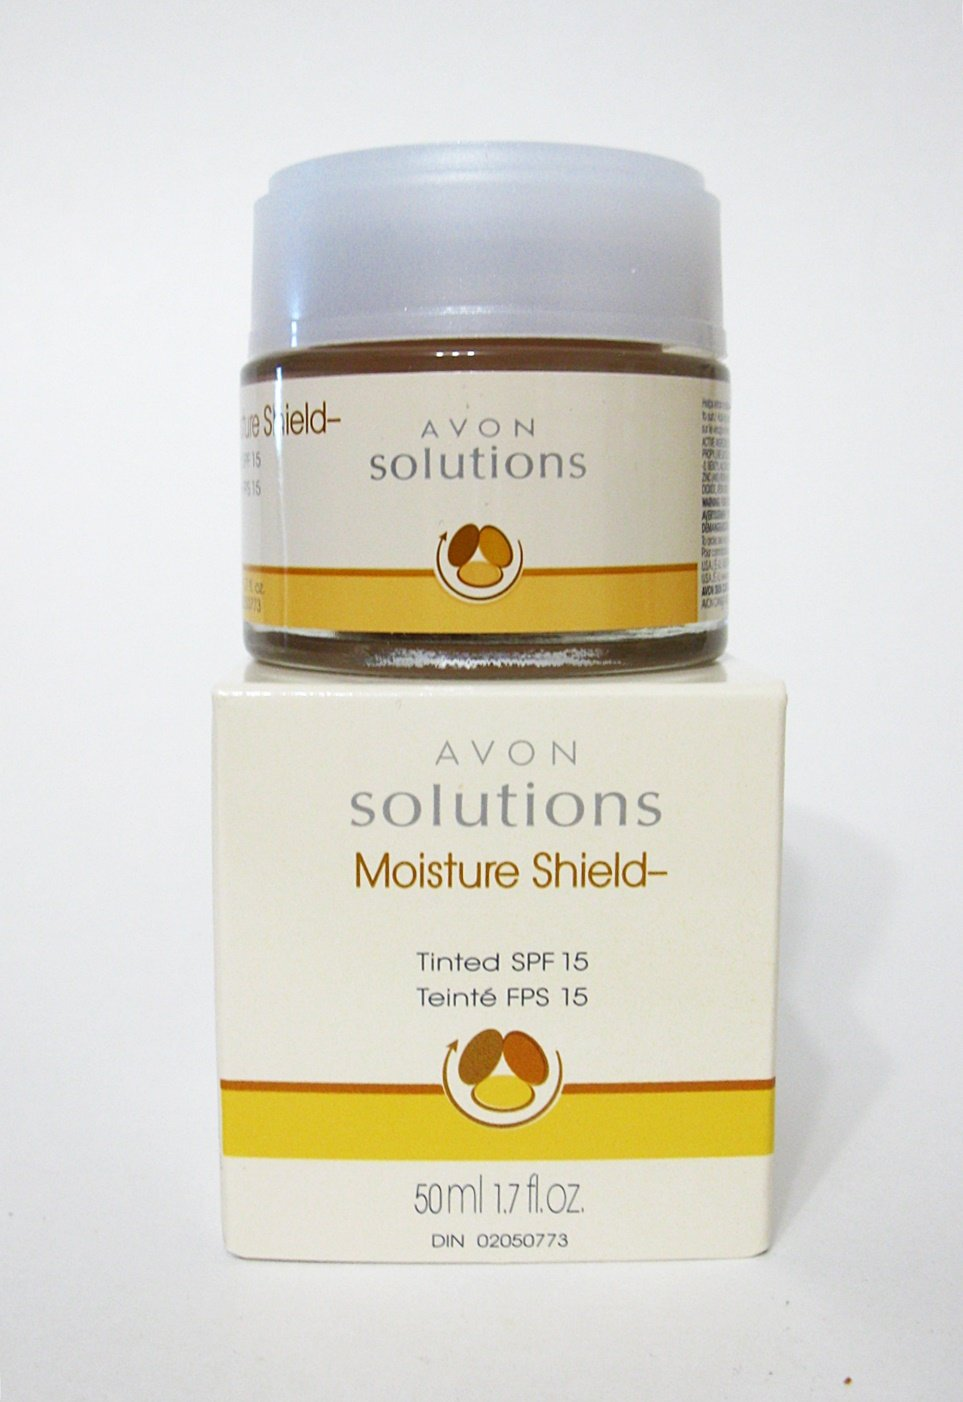 Avon Solutions Moisture Shield Tinted SPF15, 50ml Avon Products